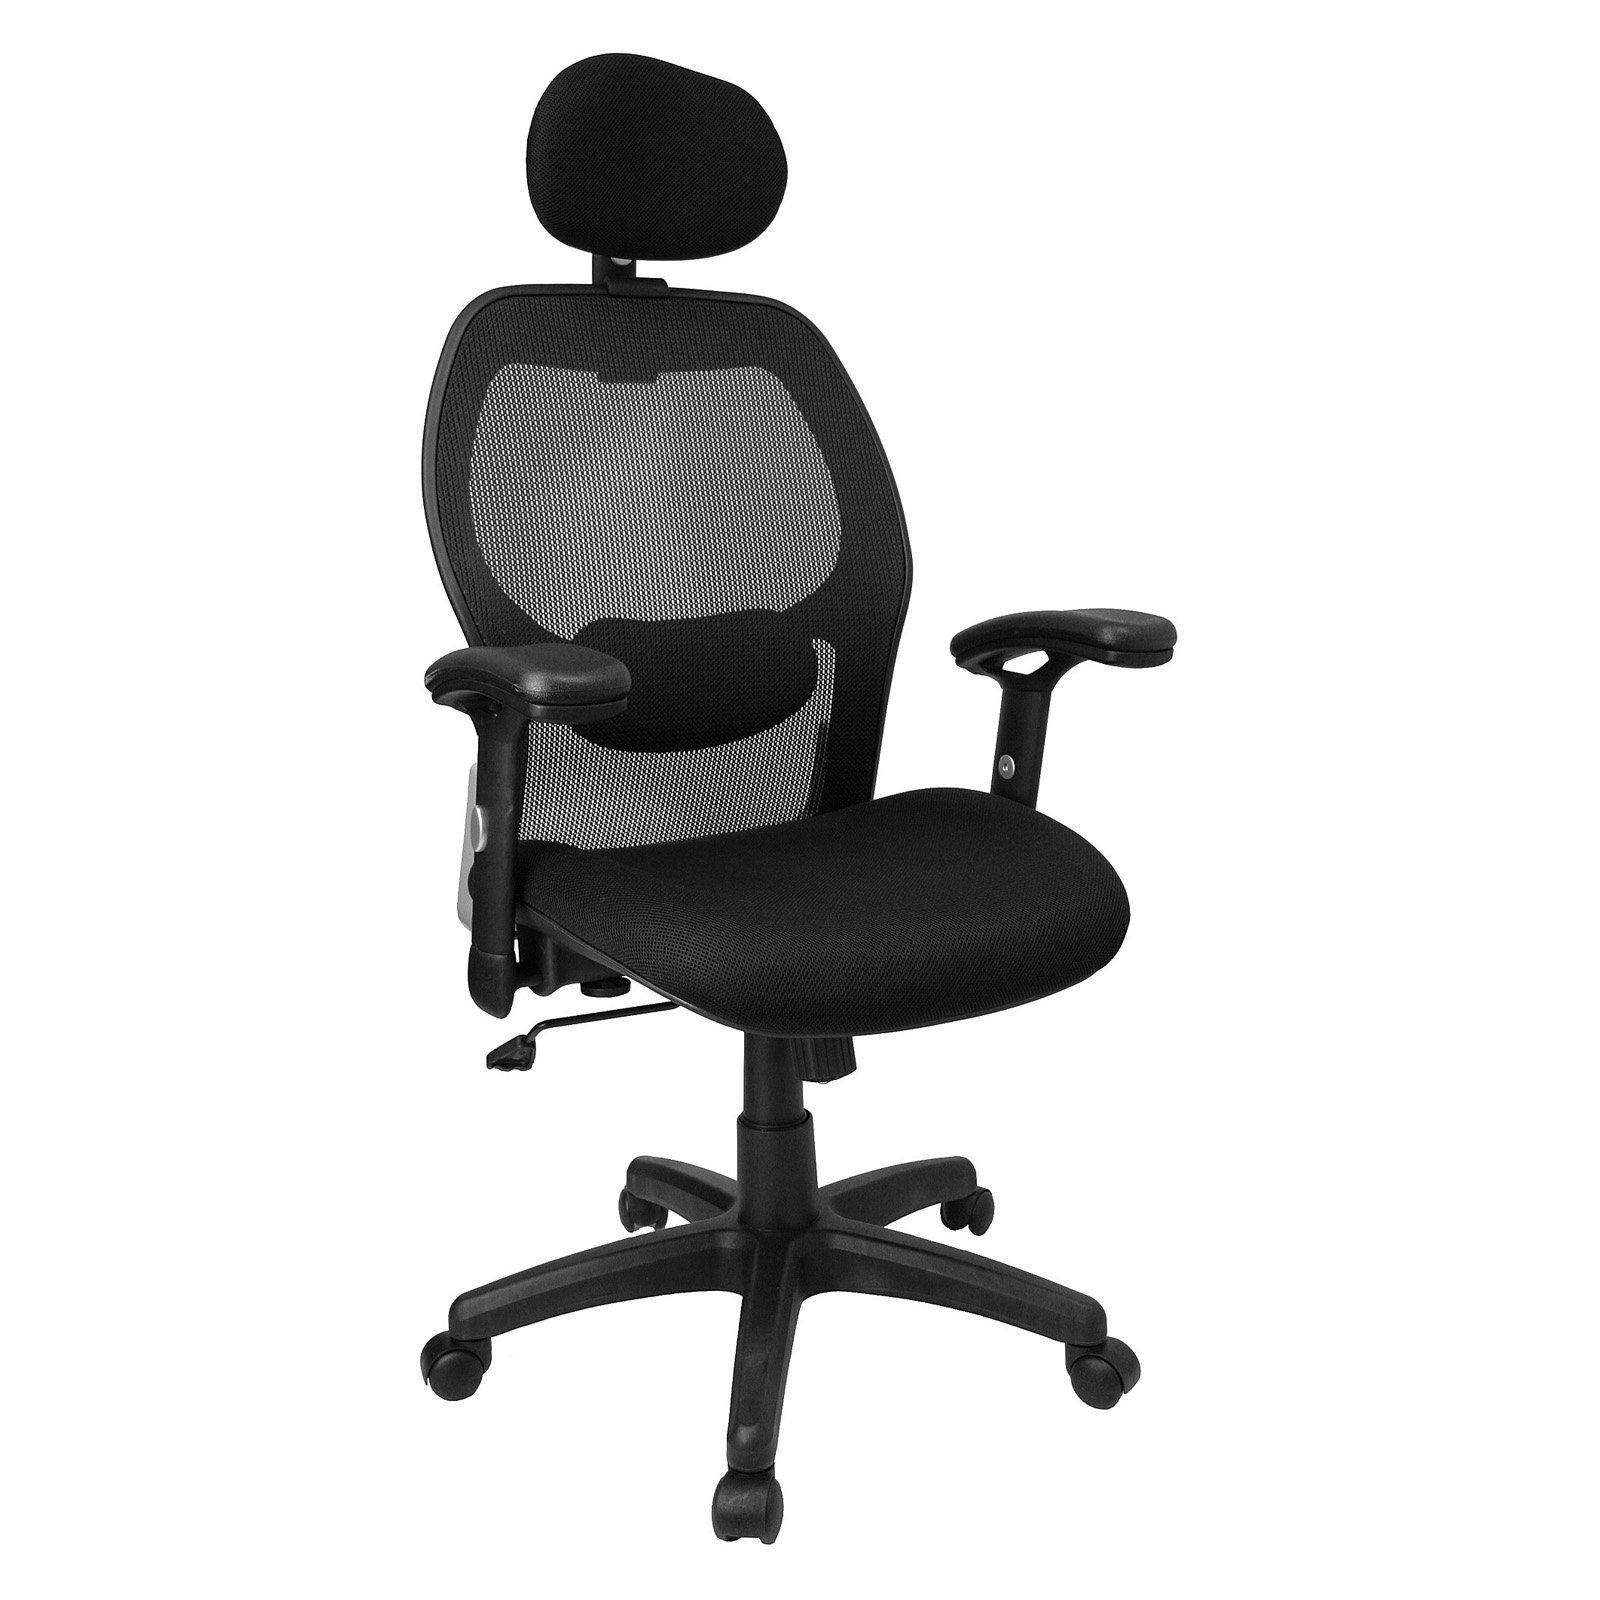 chair with headrest. super mesh back chair with headrest and arms, black